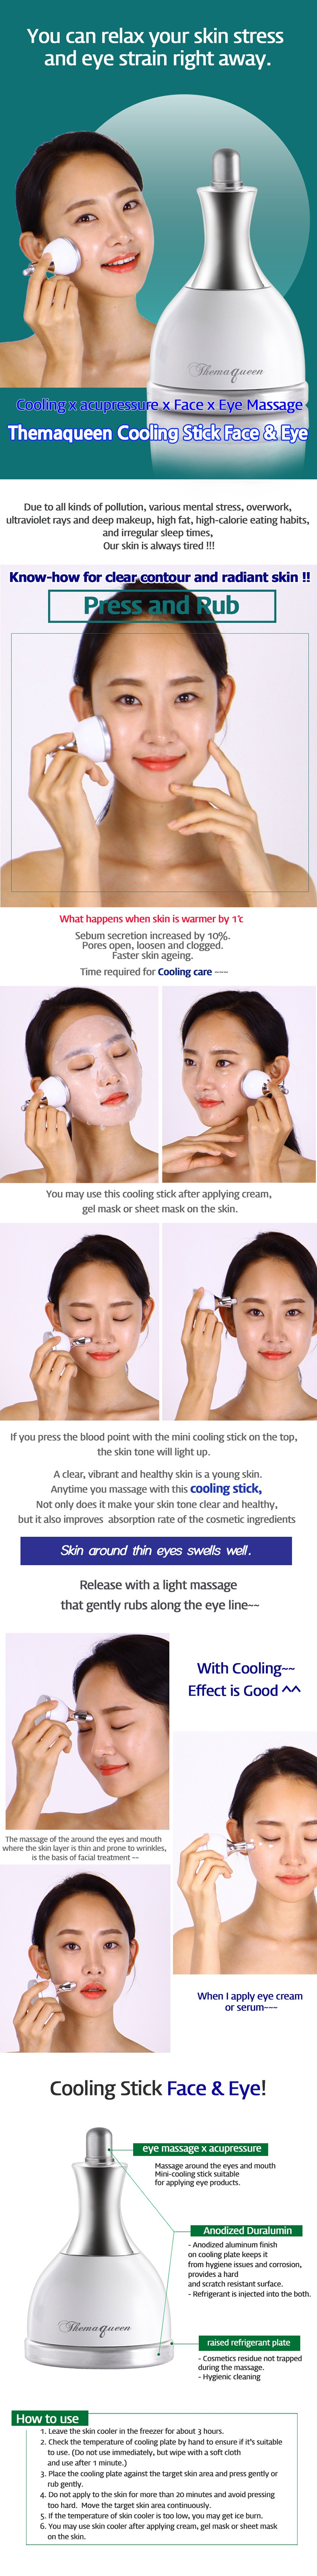 Image result for Themaqueen Face & Eye Cooling Stick